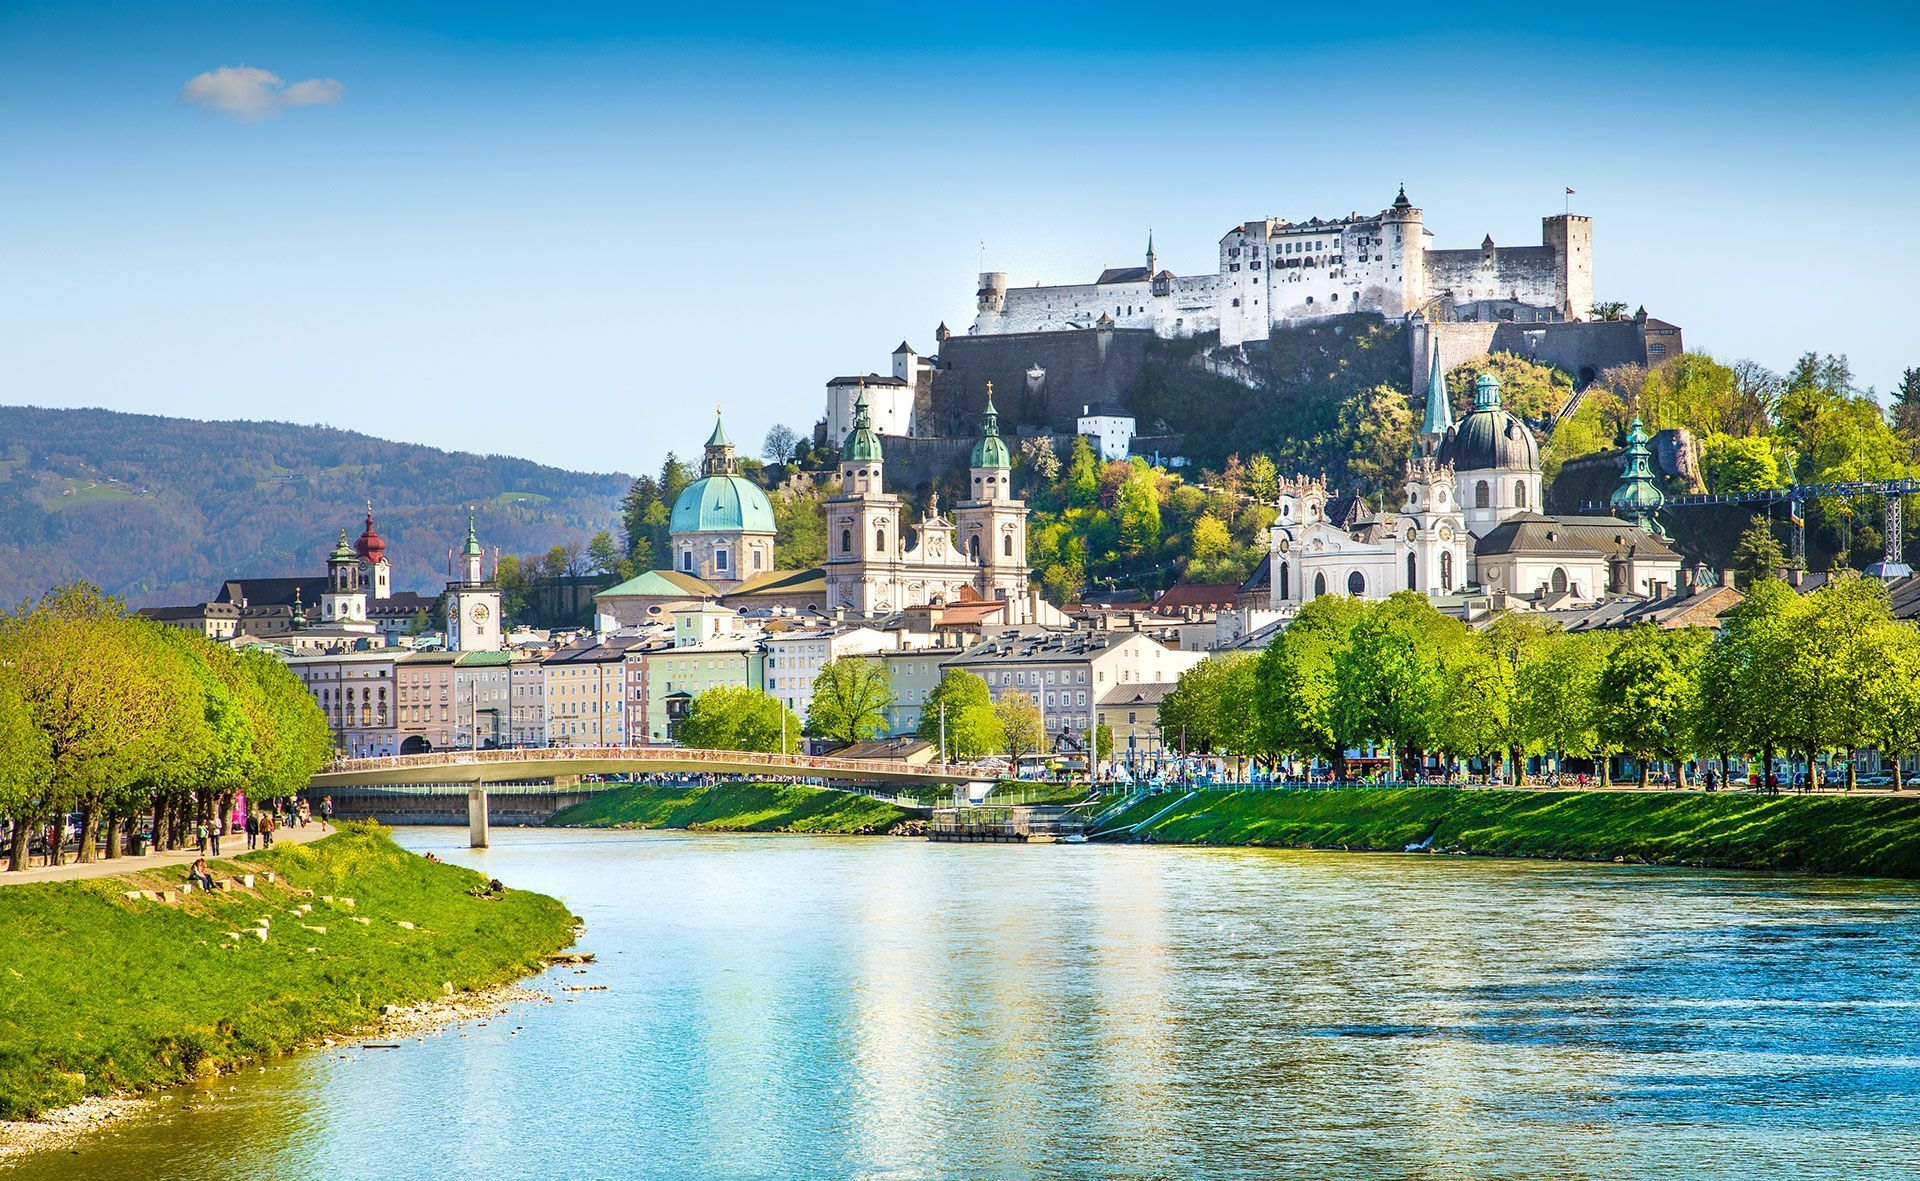 35 Salzburg Desktop Wallpapers   Download at WallpaperBro 1920x1181